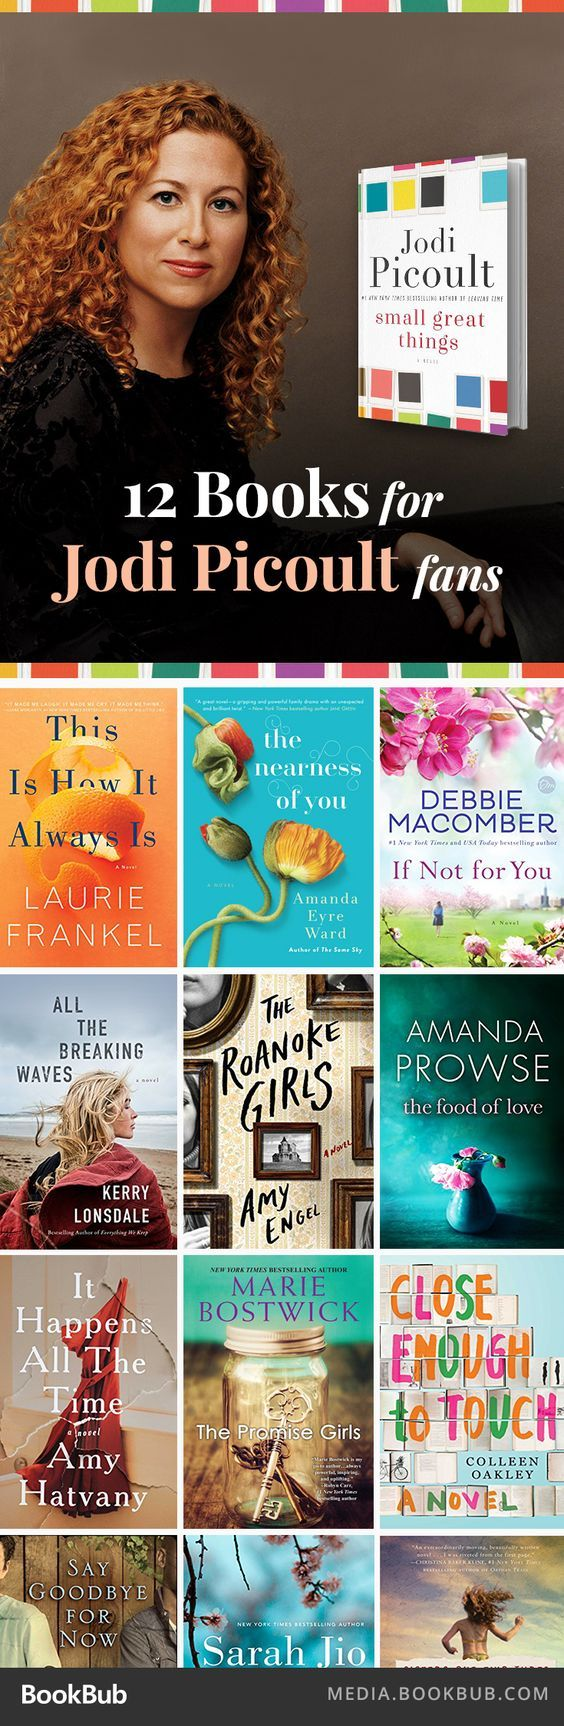 Heartwarming And Heartwarming Books To Read If You Love Jodi Picoult This  Is A Great